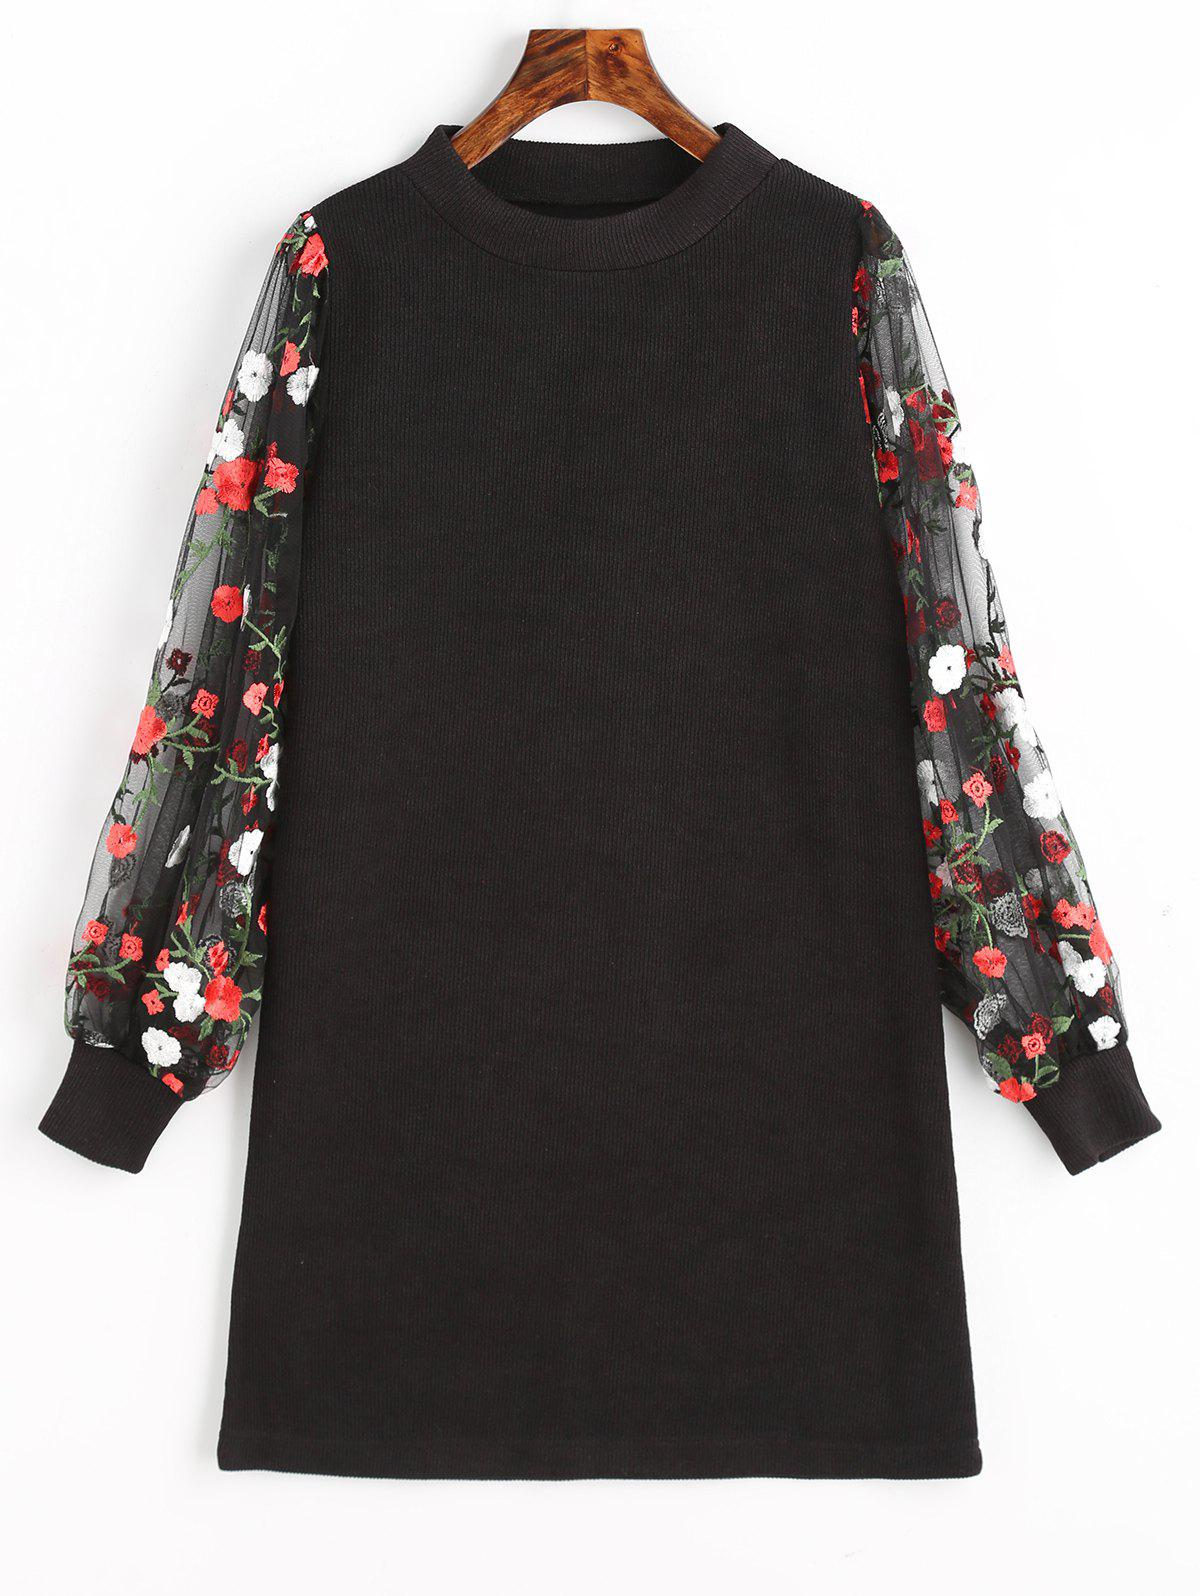 Mesh Panel Floral Mini Knit Dress - BLACK M